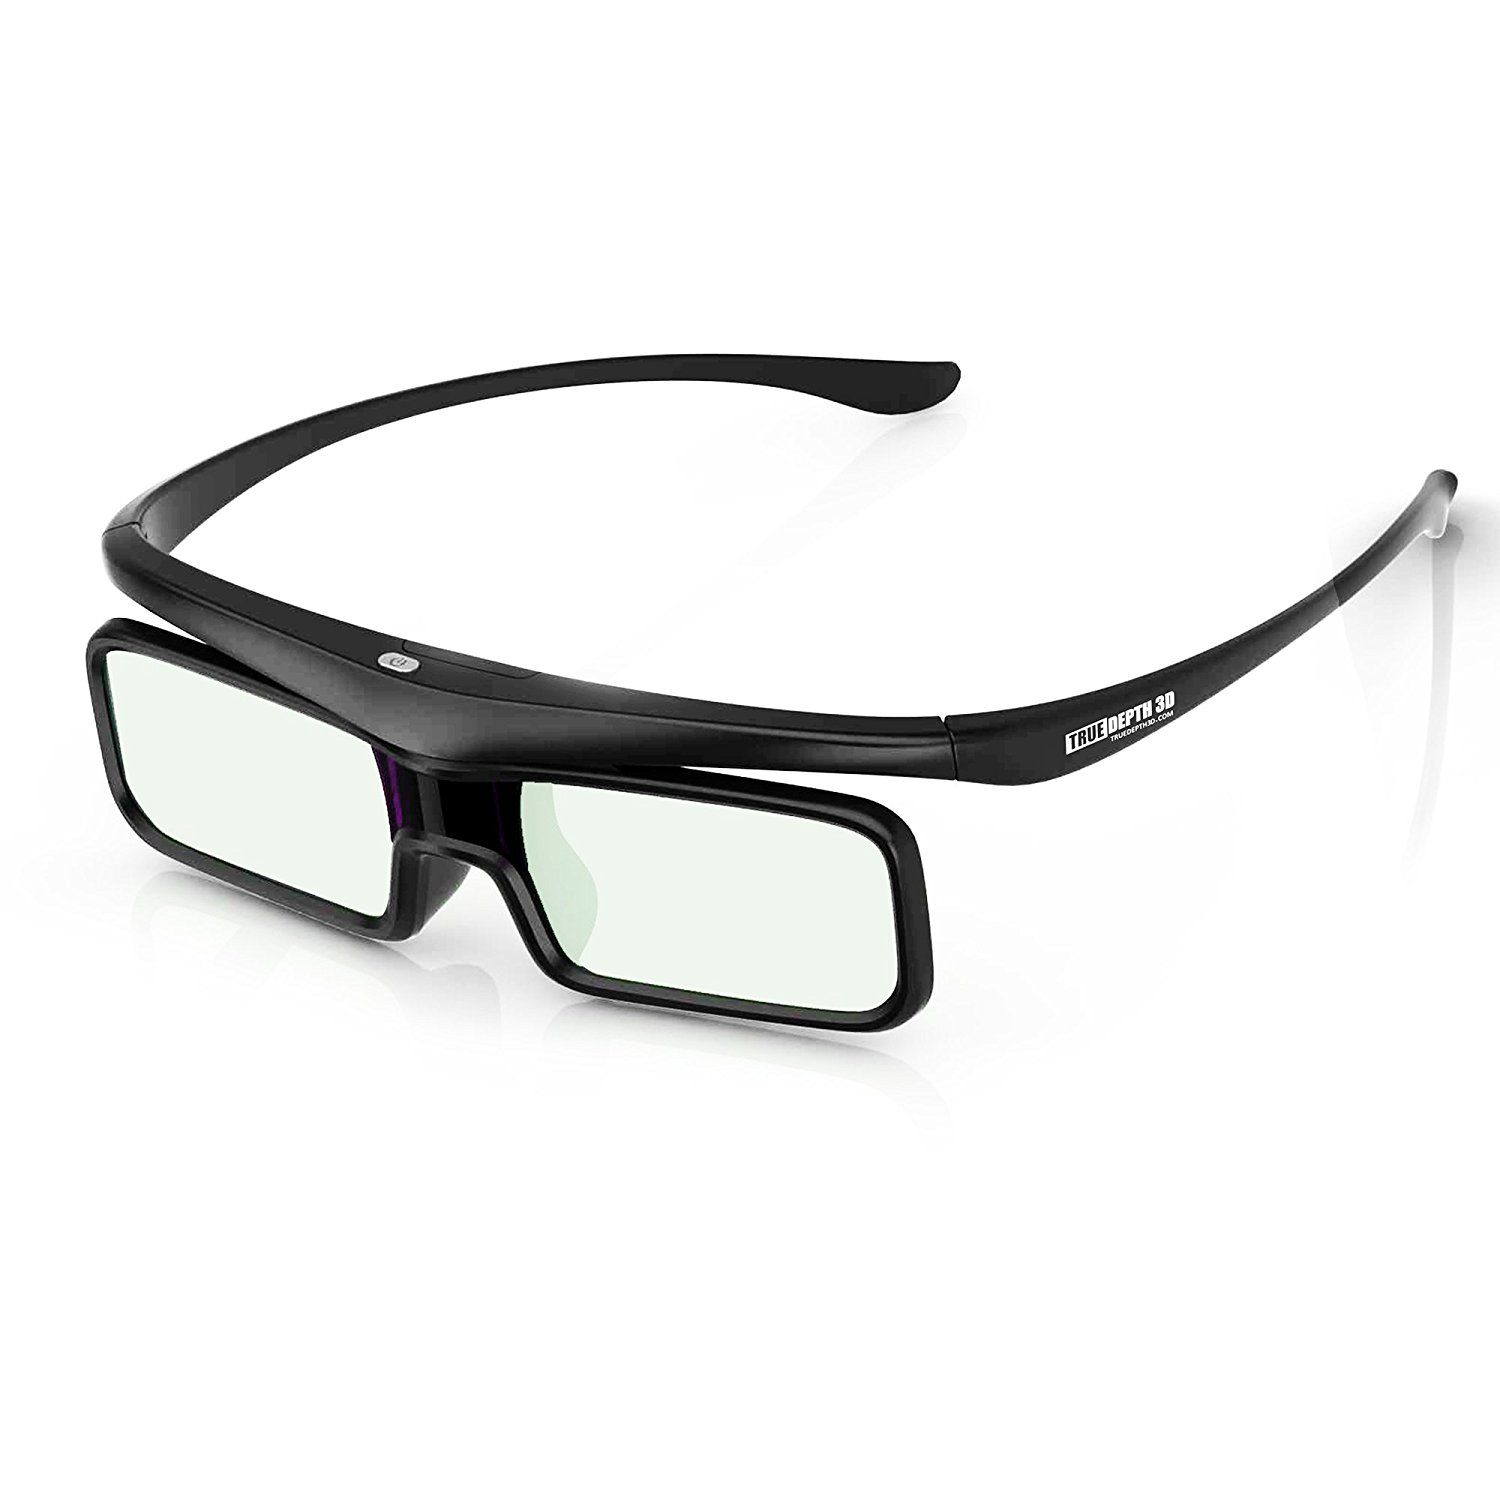 True Depth 3D® Firestorm BT Glasses for Bluetooth Mitsubishi 3D TVs (642 and 842 Series)